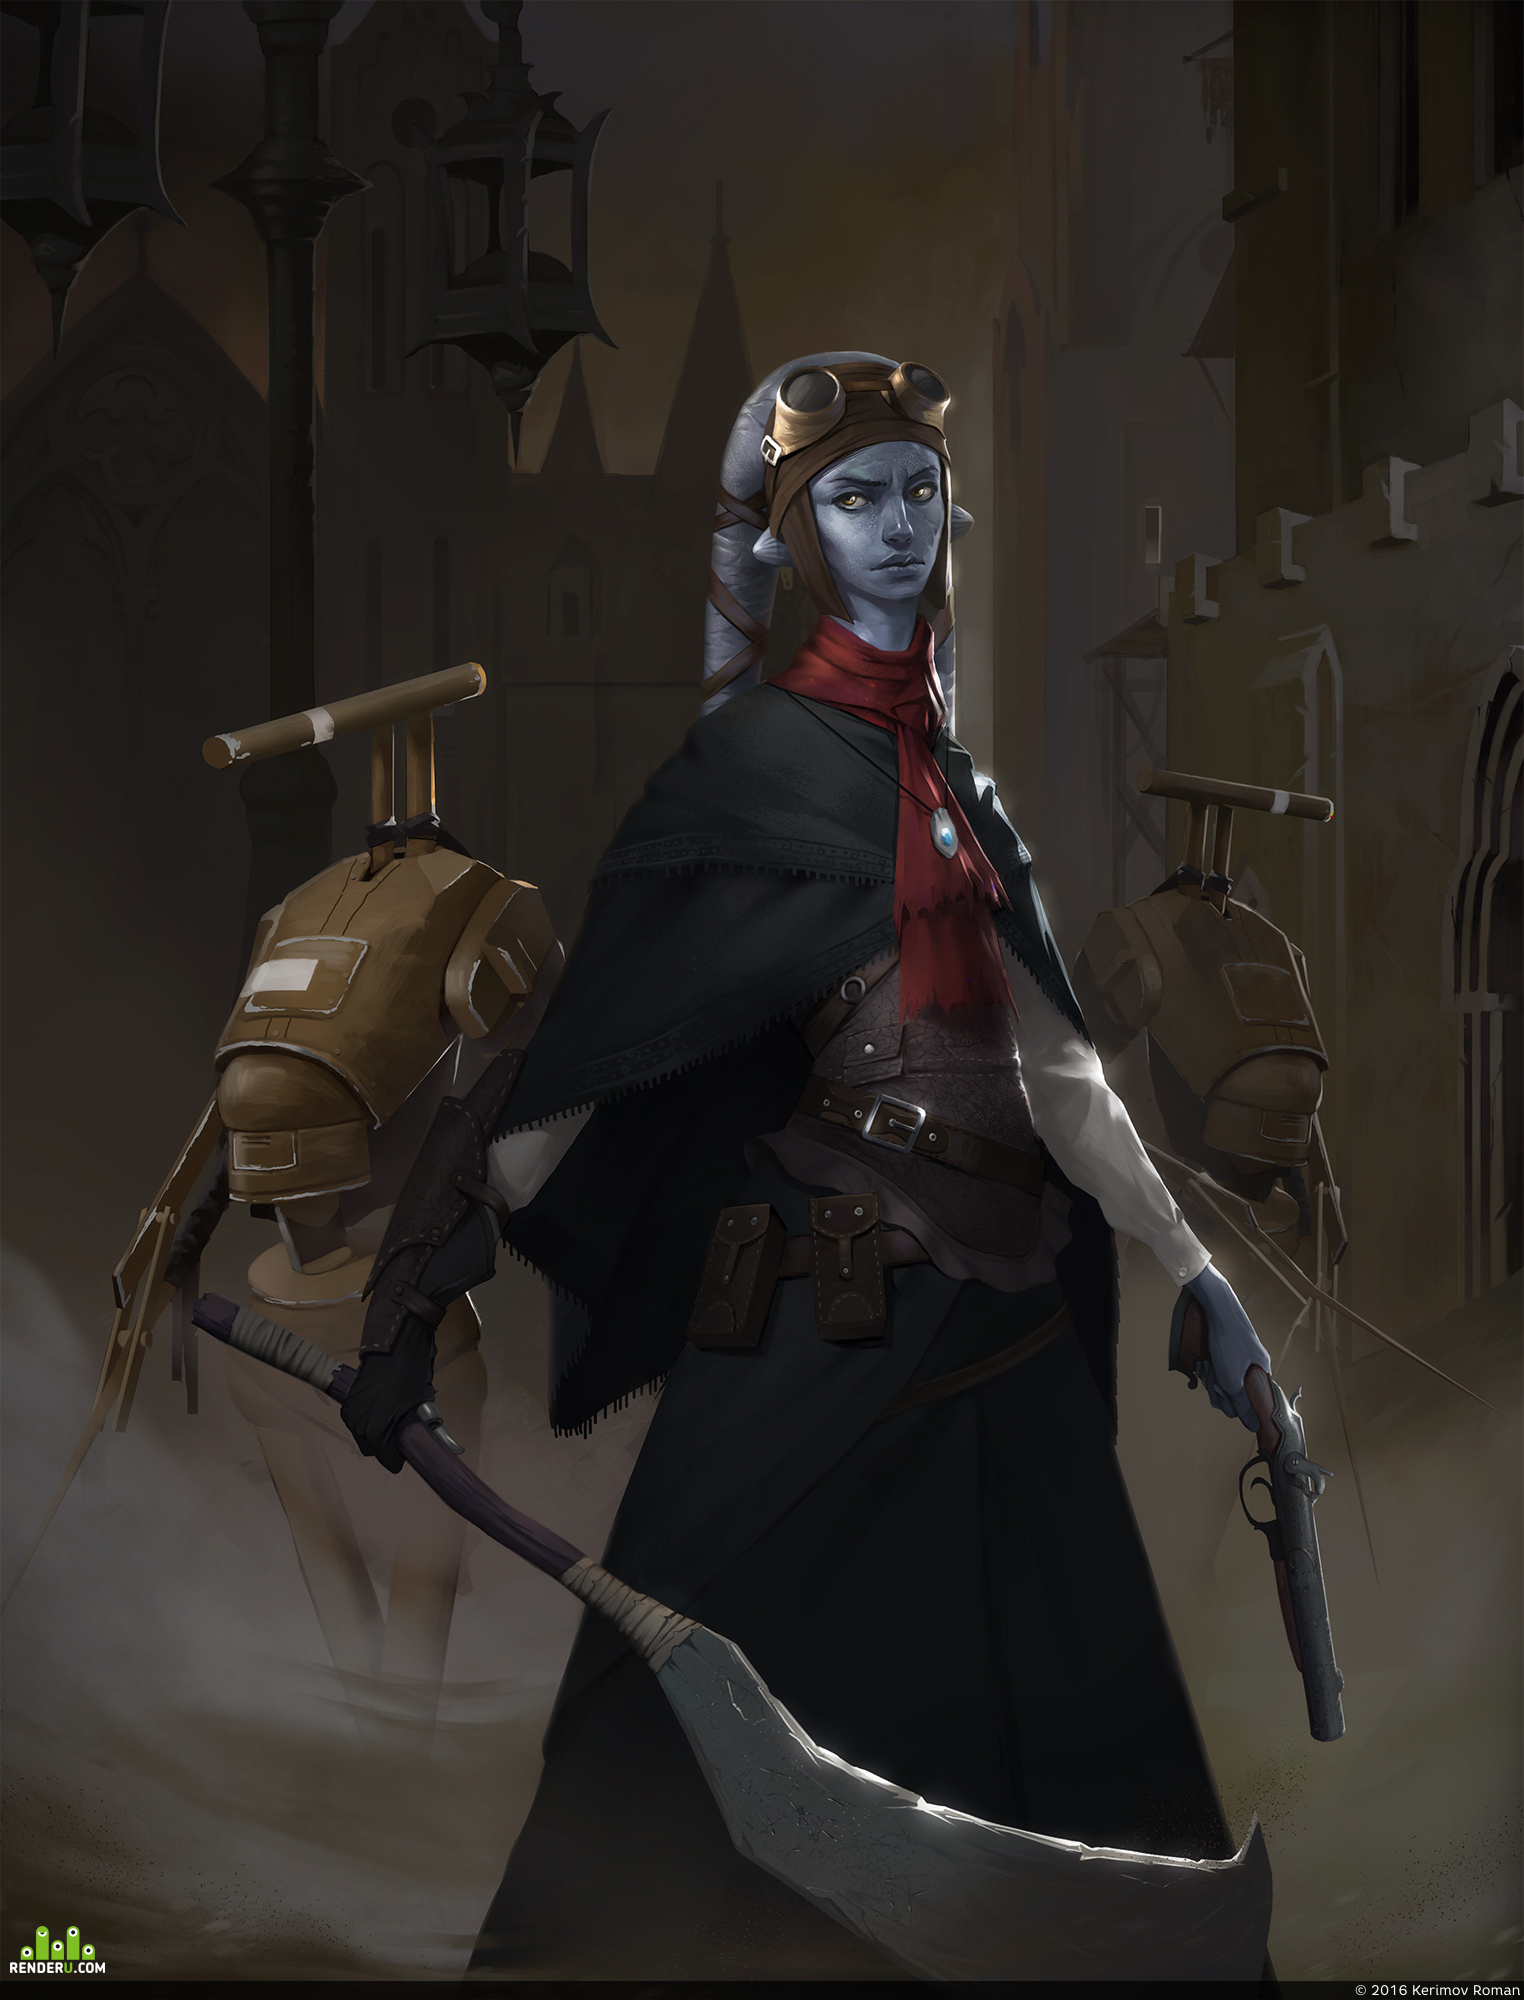 preview Aayla secura re-imagined